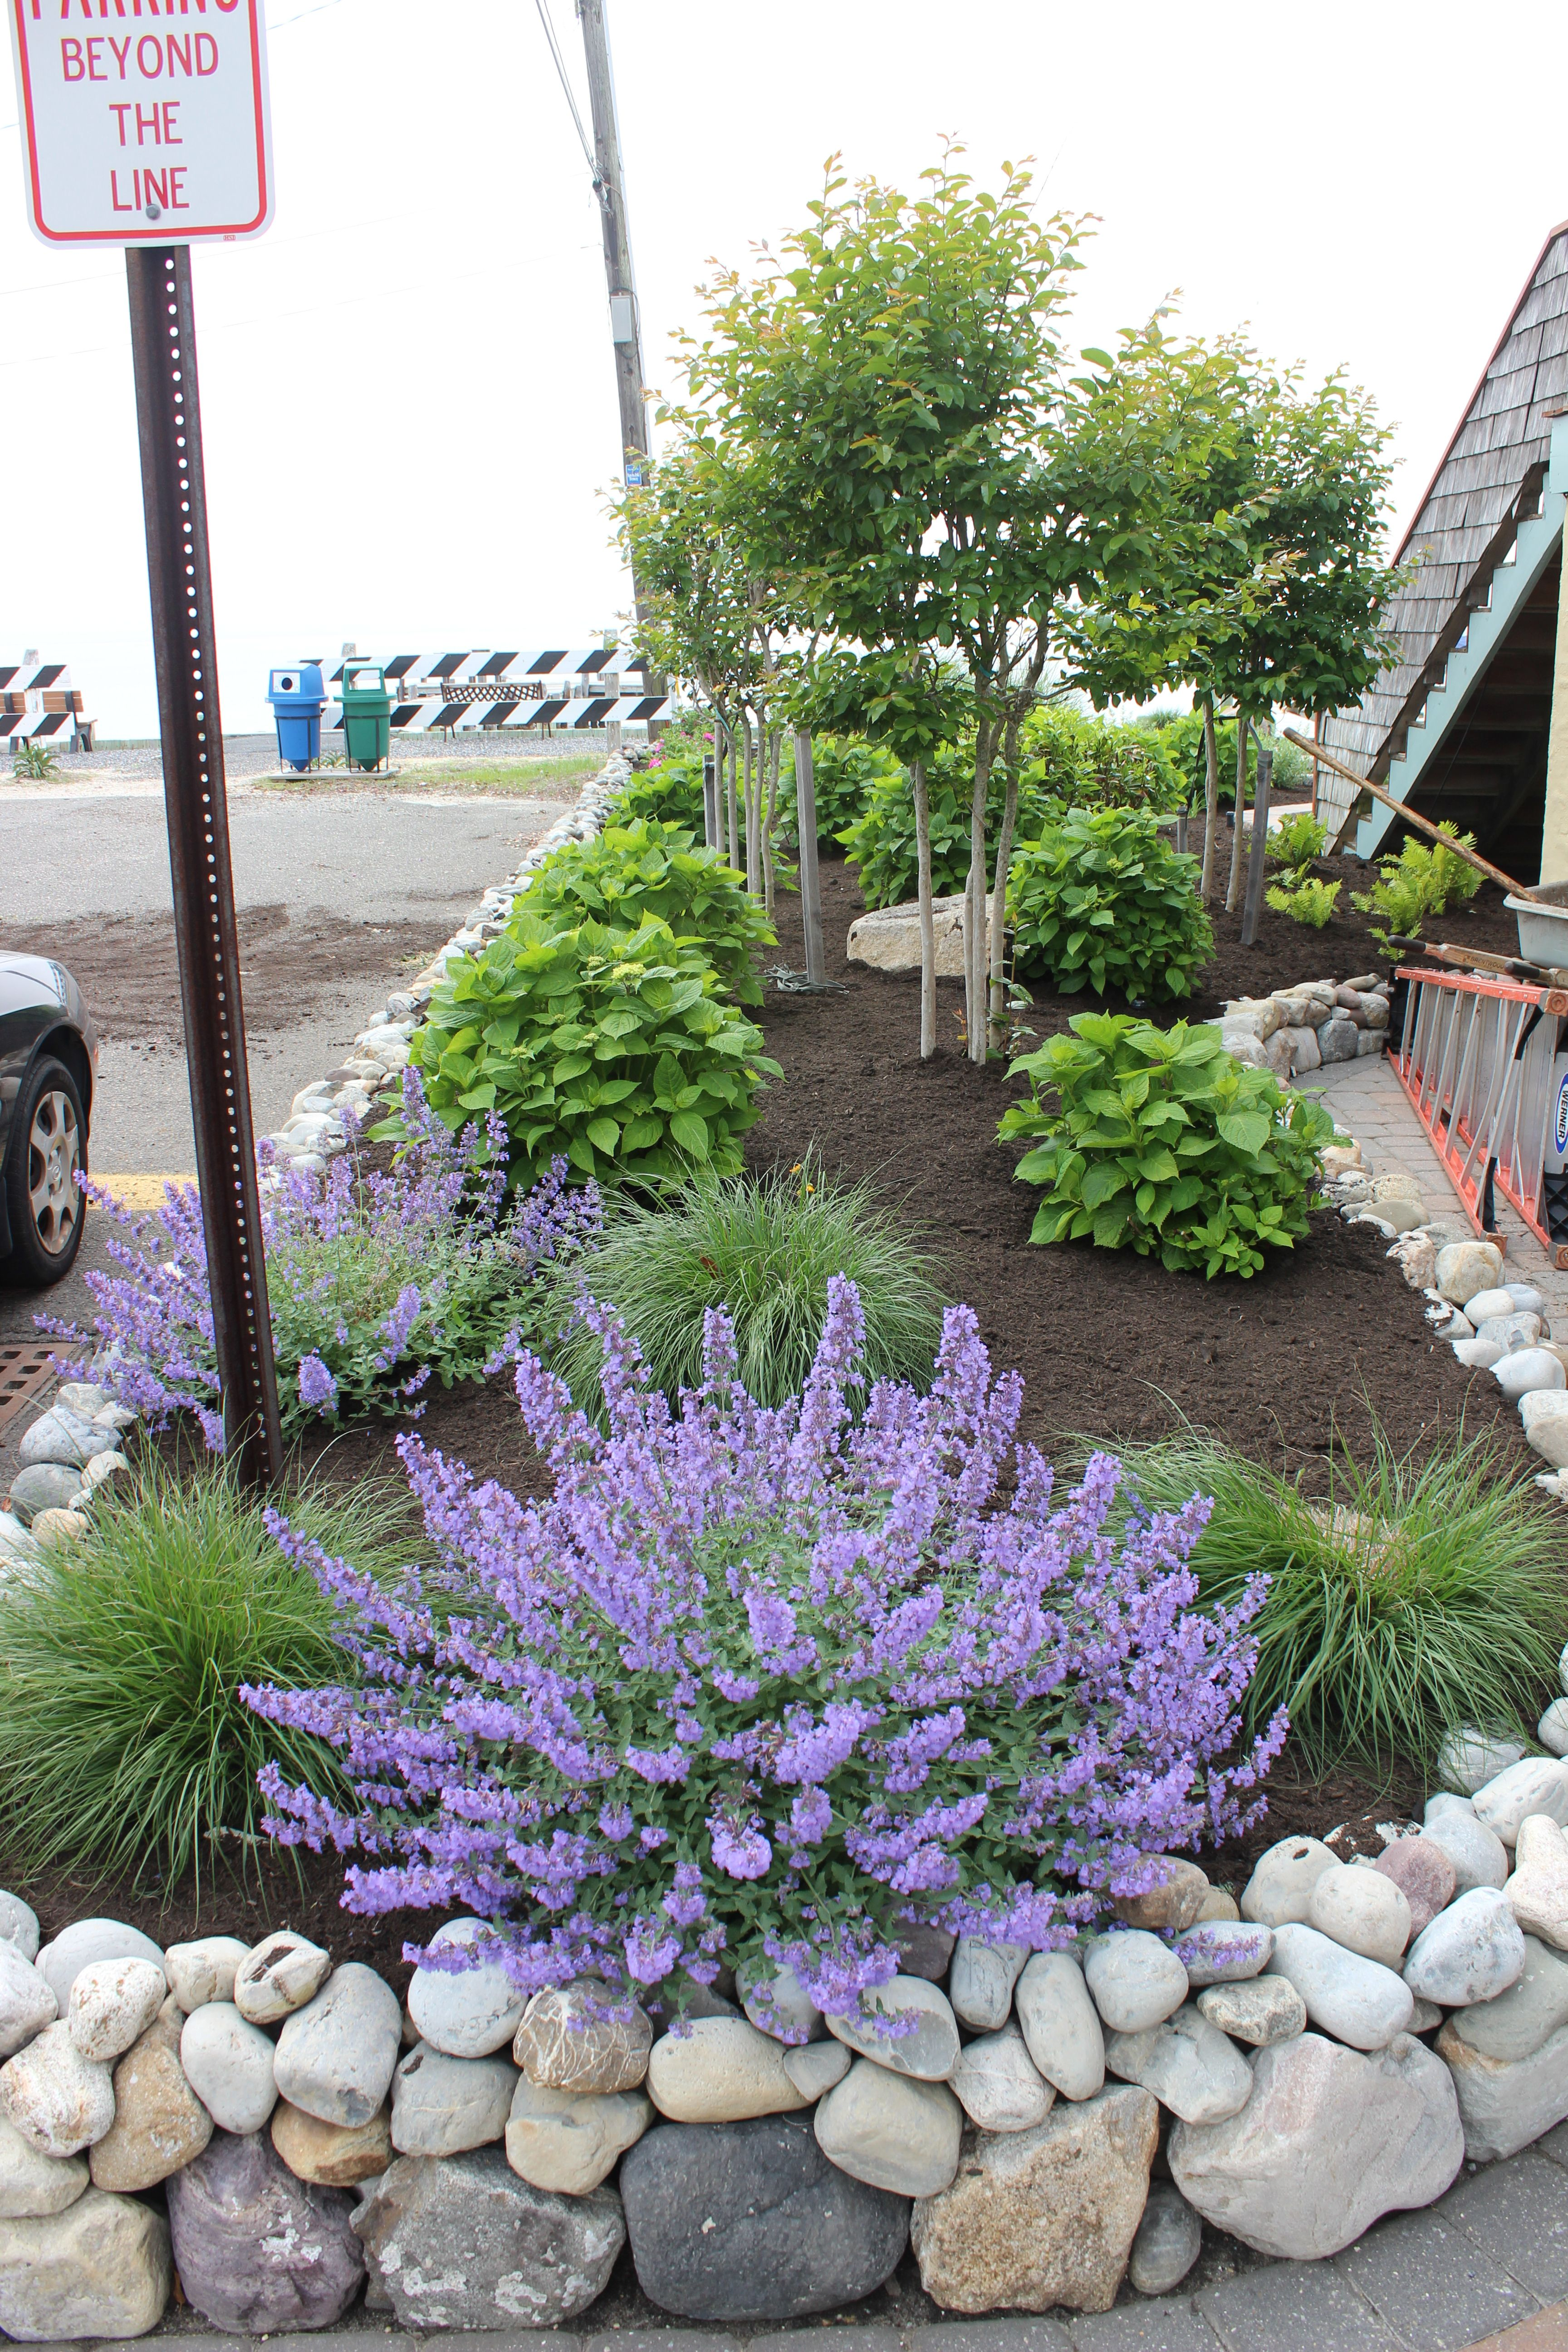 South Jersey Paver S Landscaping Pools Outdoor Living Rock Garden Landscaping Backyard Landscaping Garden Landscaping